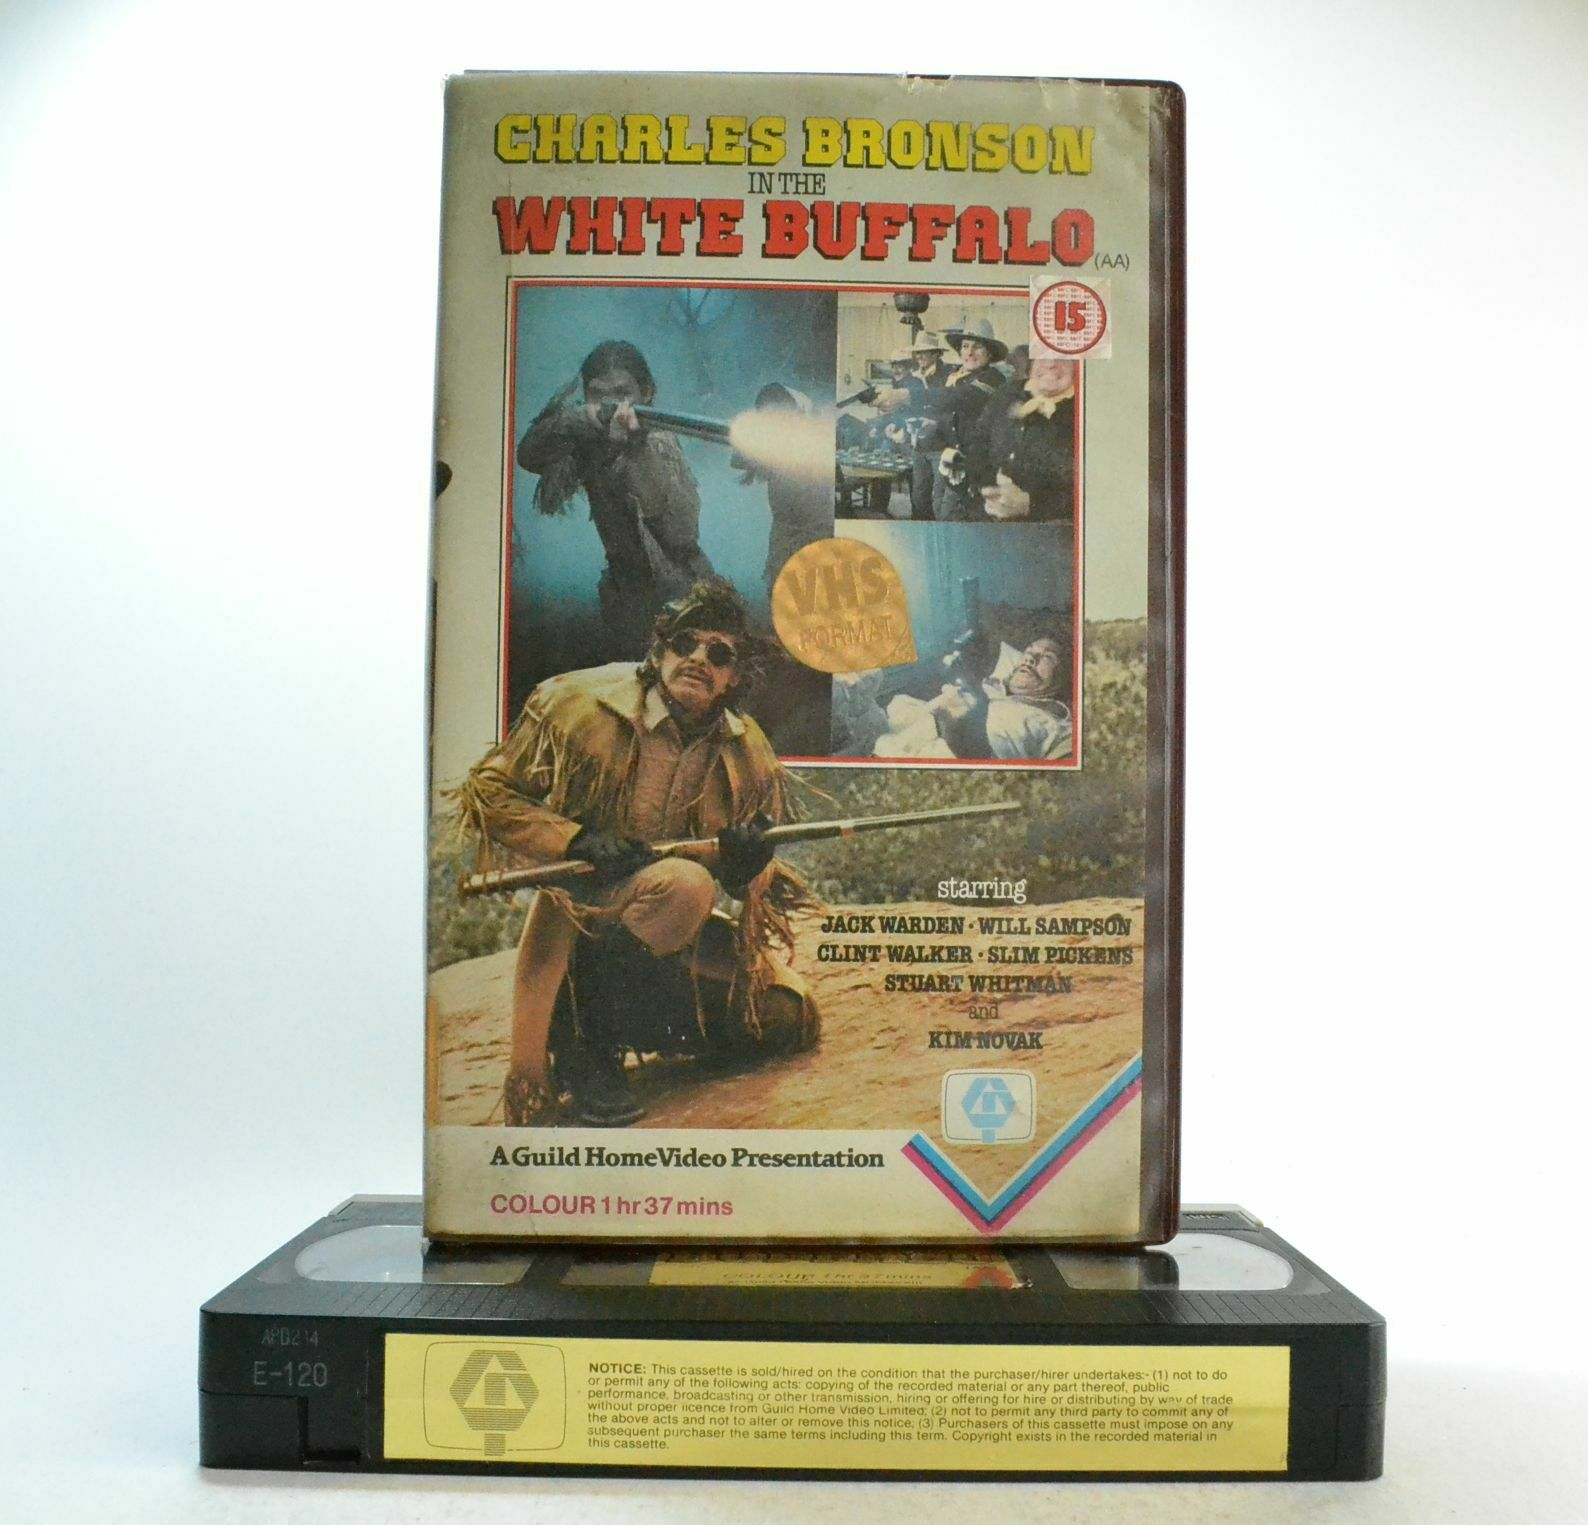 White Buffalo - Early Guild Release - Western 1874 - ExRental - Pre Cert VHS